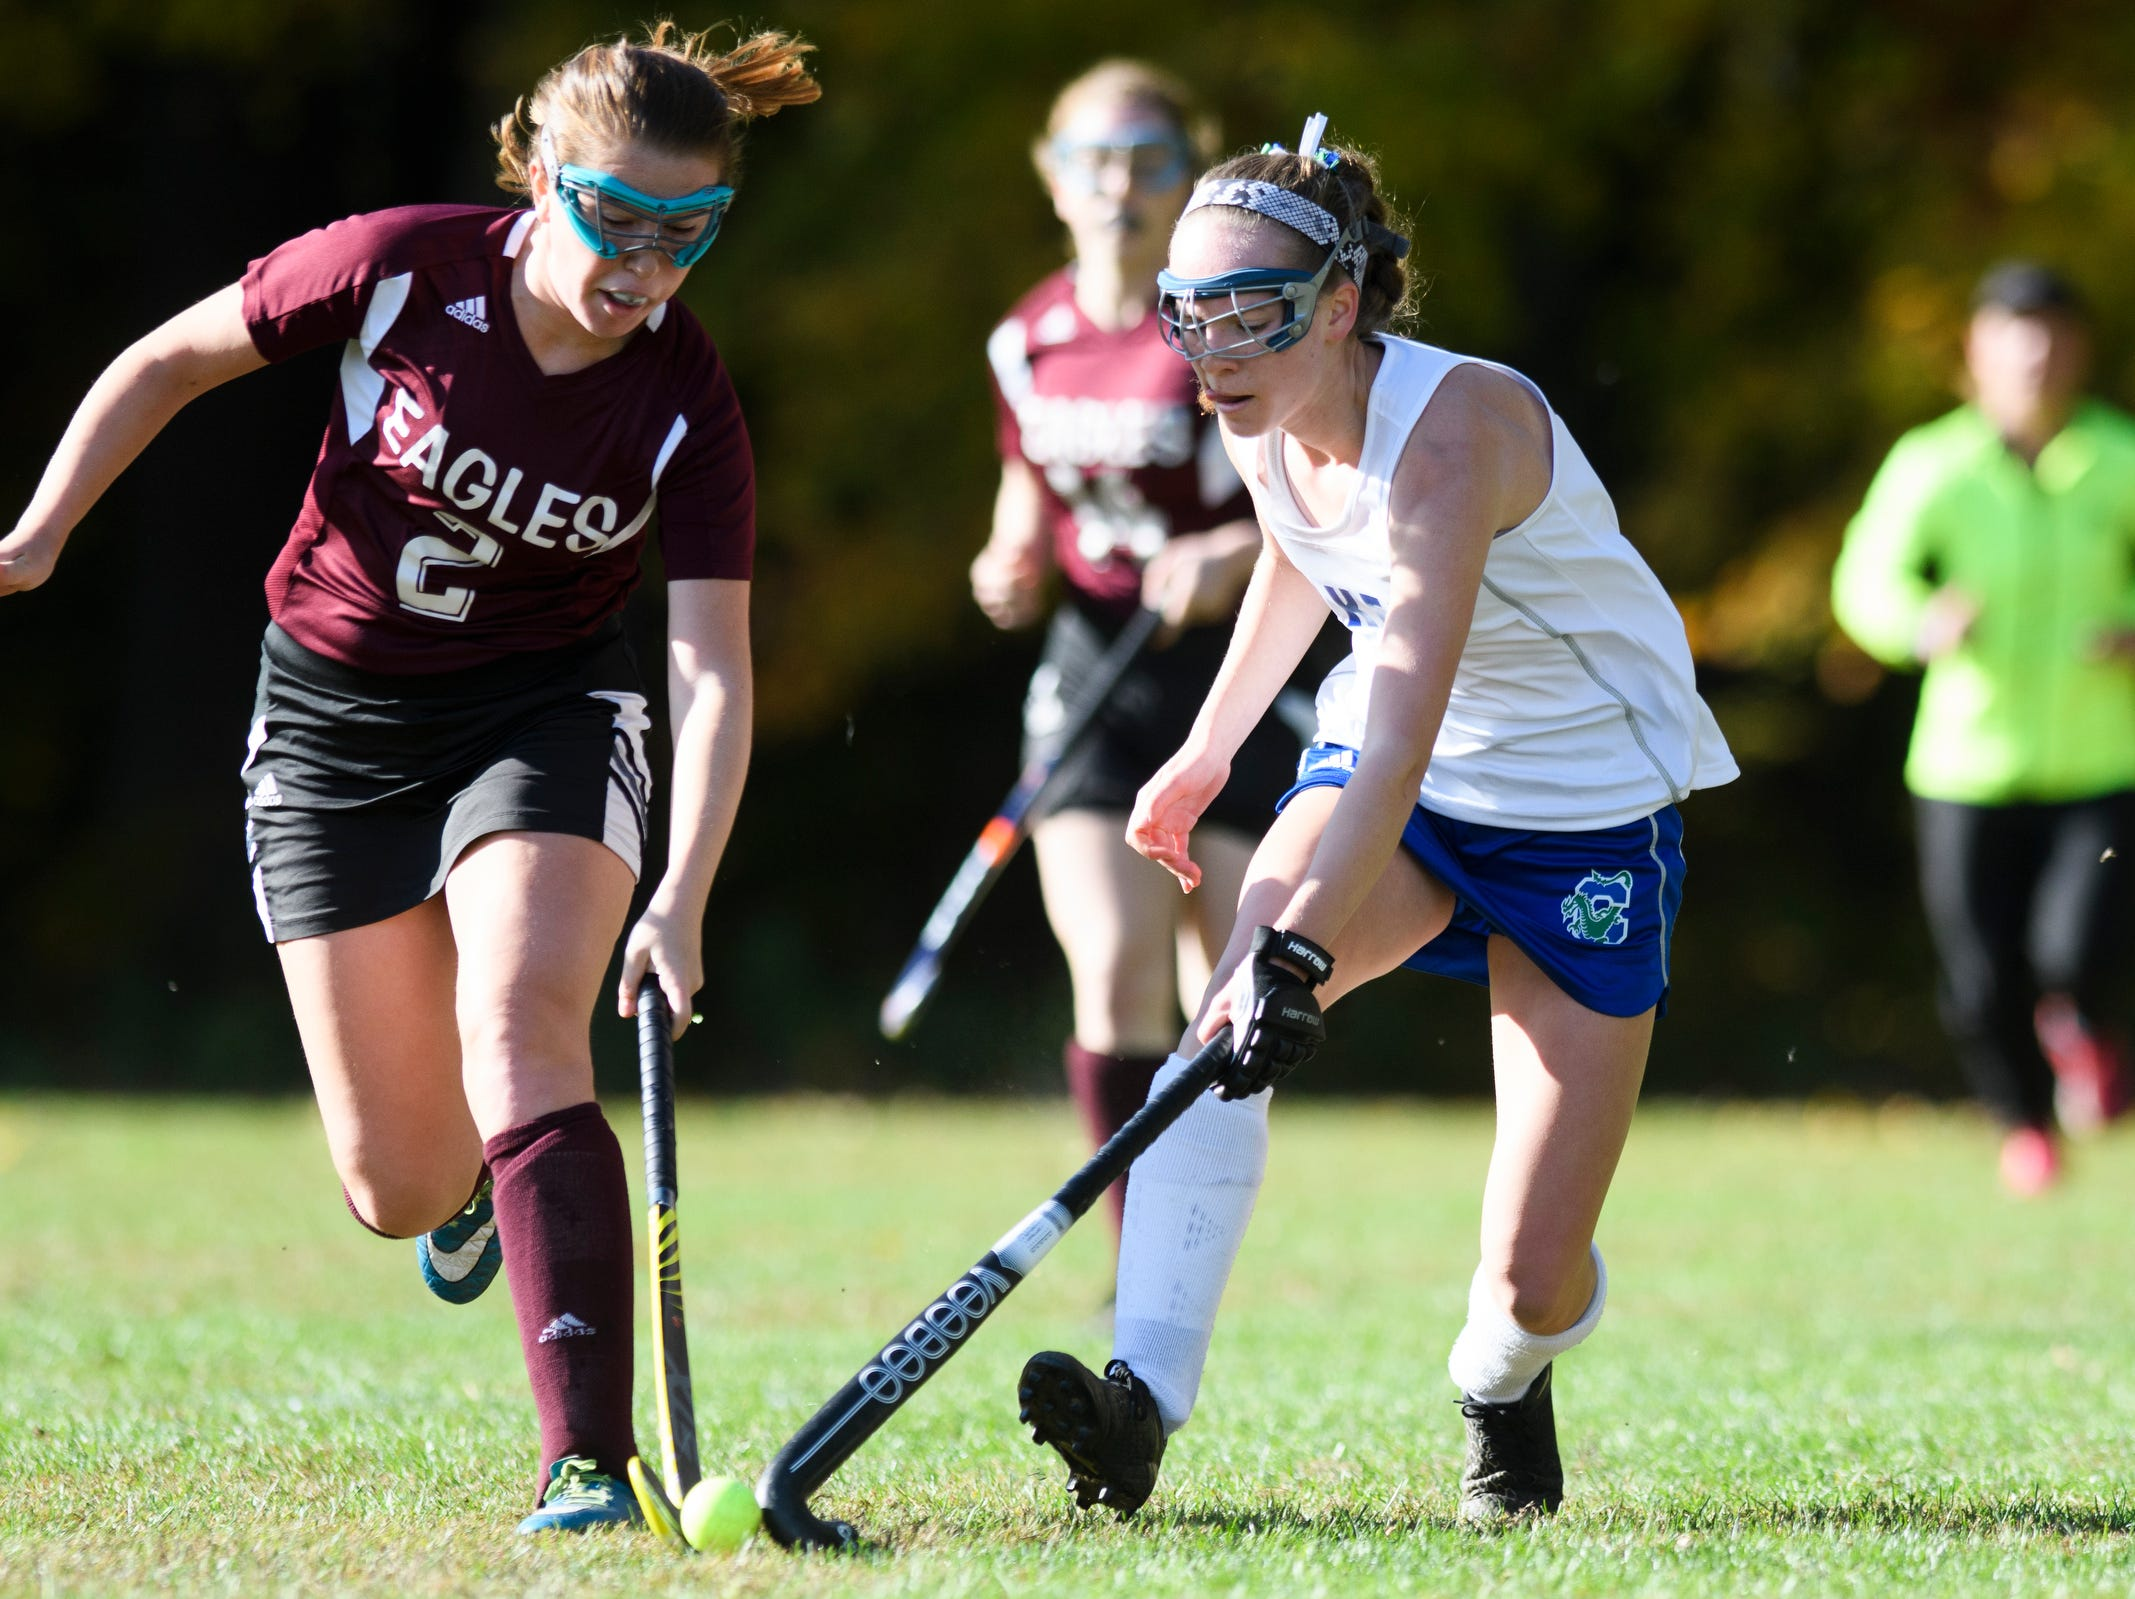 Colchester's Patra Bajuk (14) battles for the ball with Mt. Abraham's Elizabeth Porter (2) during the field hockey game between Mount Abraham and Colchester at Colchester High School on Saturday morning October 20, 2018 in Colchester.